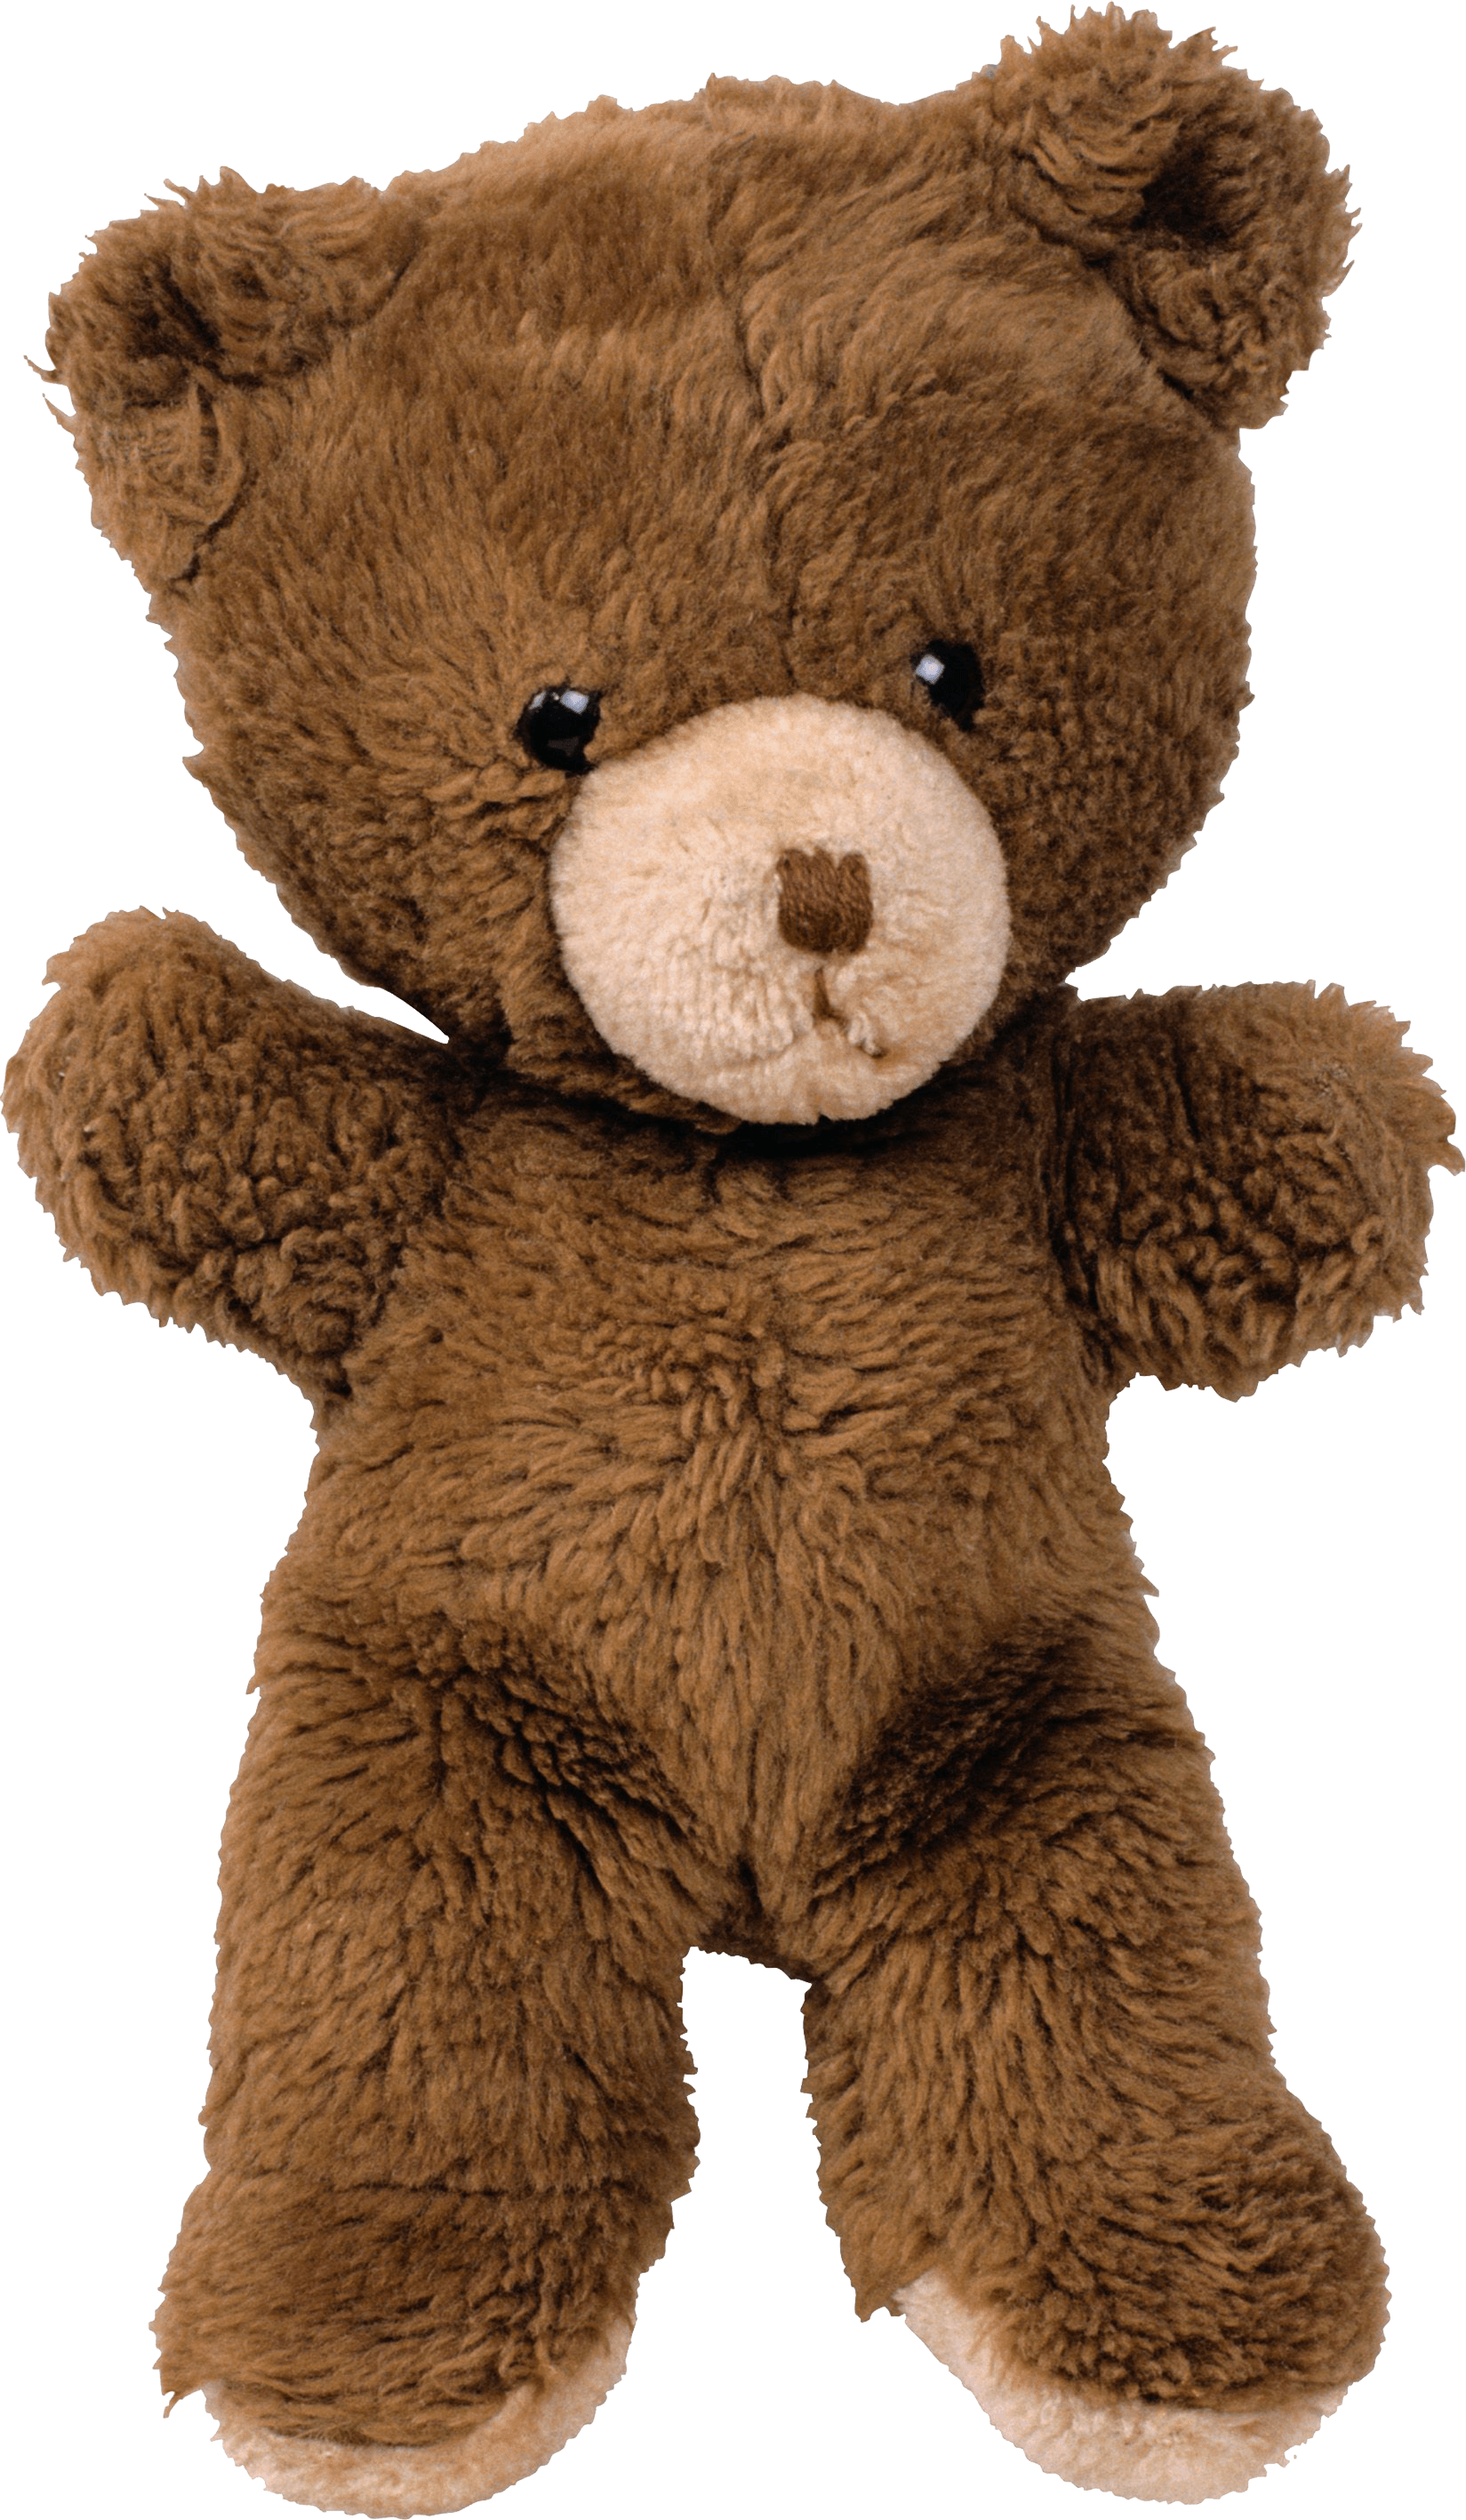 Toy Bear Png Image PNG Image